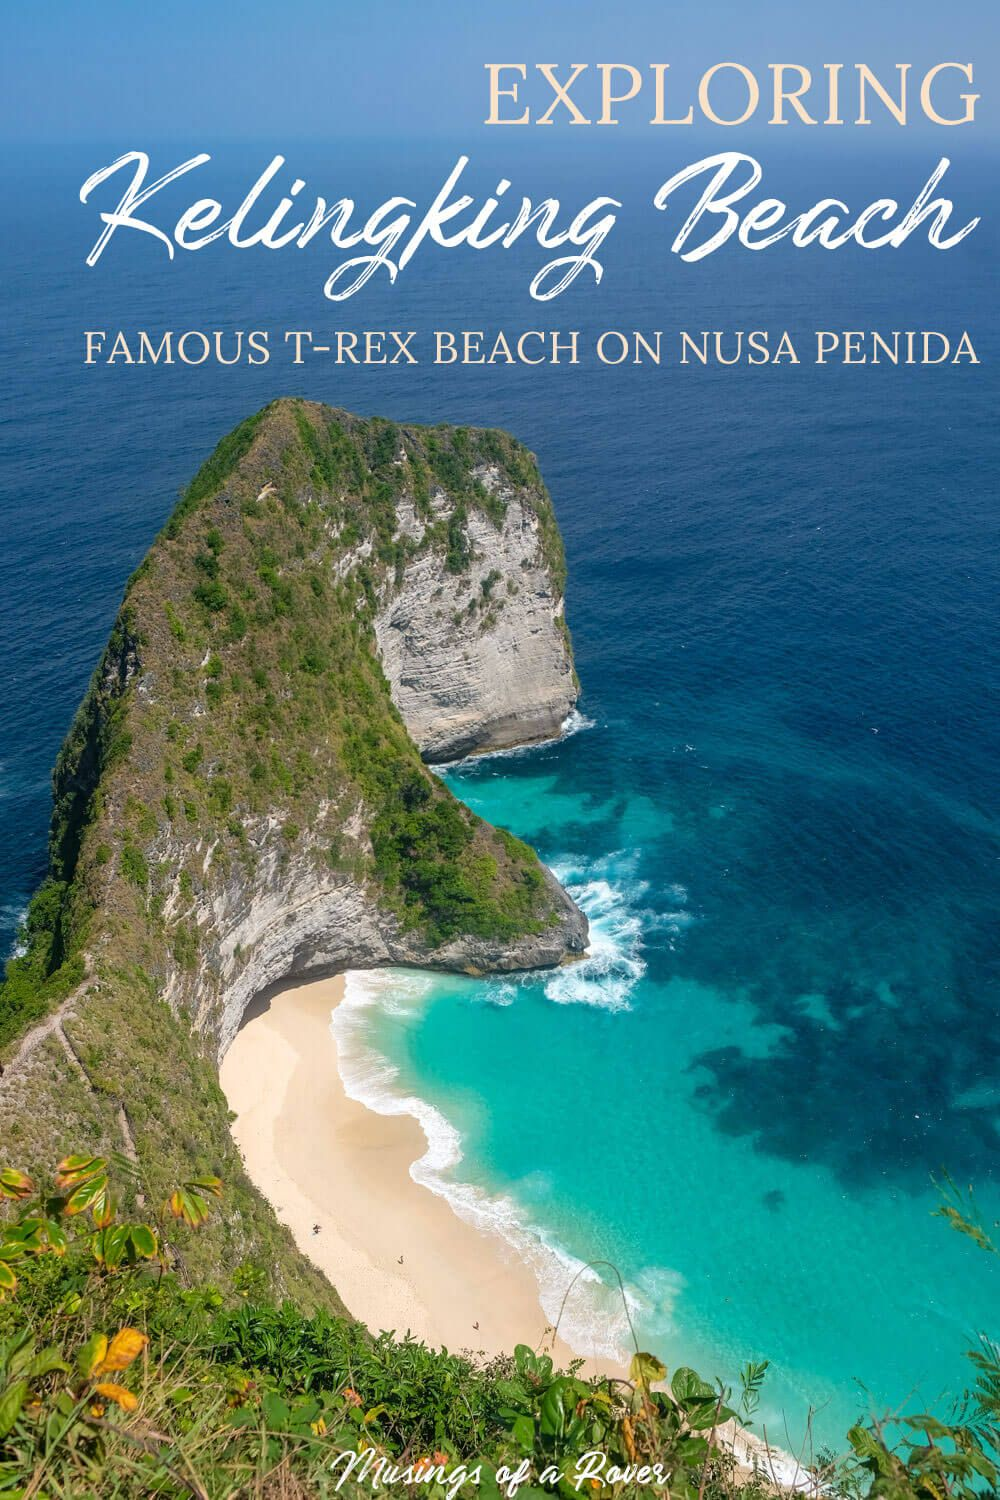 Headed to Nusa Penida near Bali to see the famous Kelingking Beach (aka T-Rex Beach)? Find out everything about the hike down to the beach here. Also includes how to get to the beach and where to stay nearby.